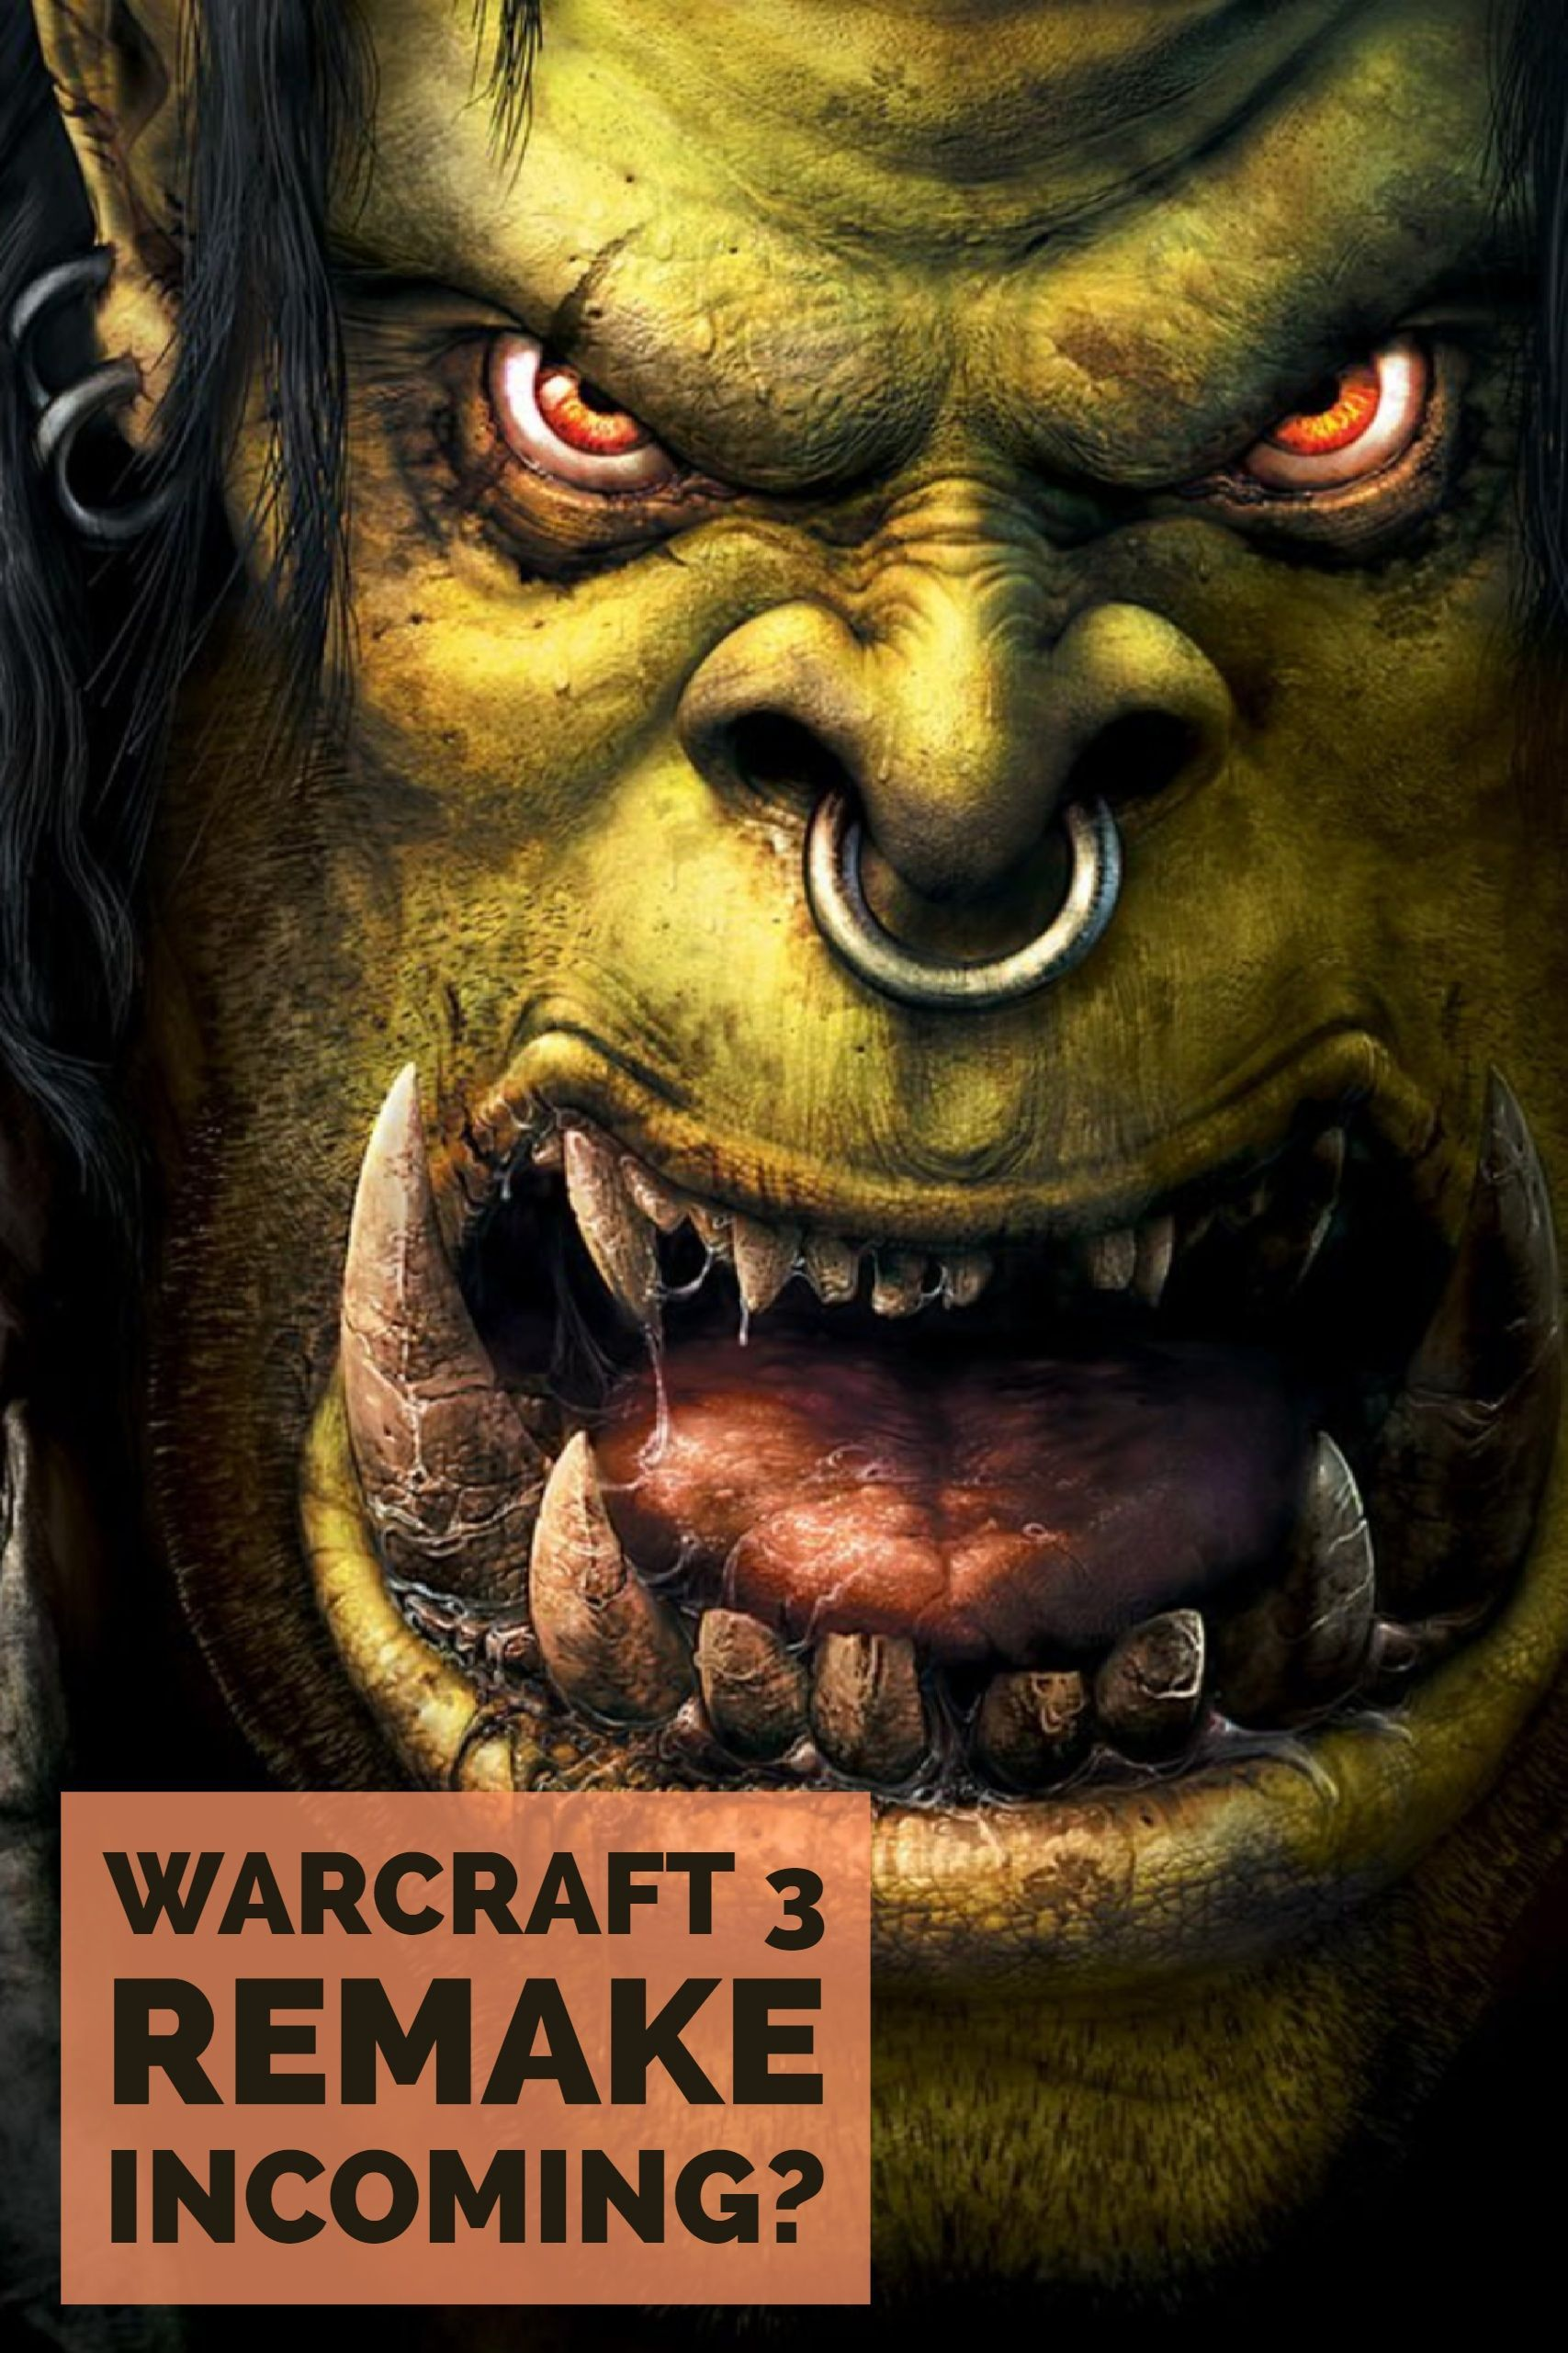 Blizzard Releases Major Warcraft Iii Patch Remaster Imminent World Of Warcraft Wallpaper World Of Warcraft World Of Warcraft Orc